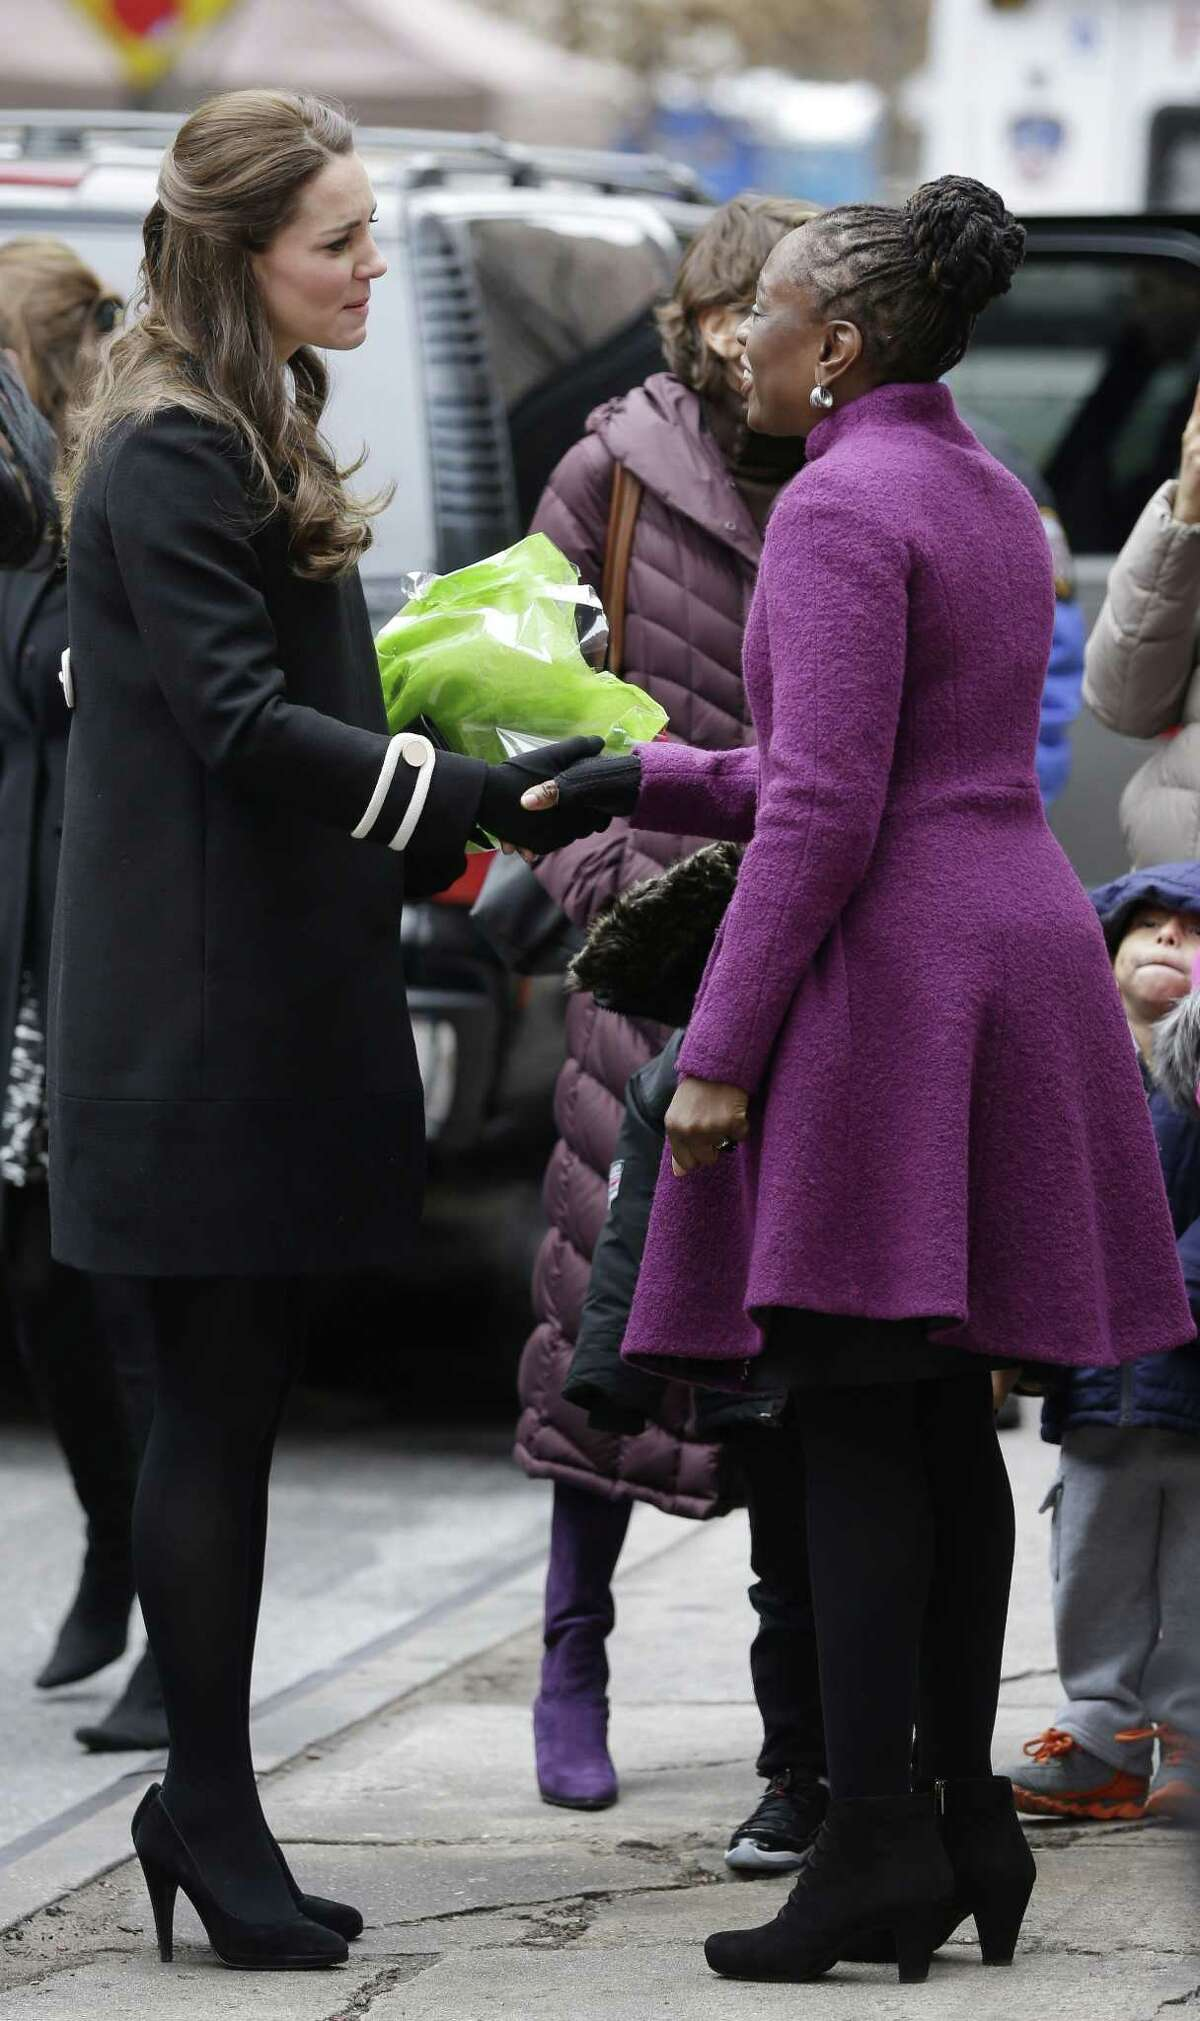 Kate Middleton, the Duchess of Cambridge, left, shakes hands with Chirlane McCray, wife of New York City Mayor Bill de Blasio, after leaving the Northside Center for Childhood Development in New York, Monday, Dec. 8, 2014. (AP Photo/Seth Wenig, Pool)